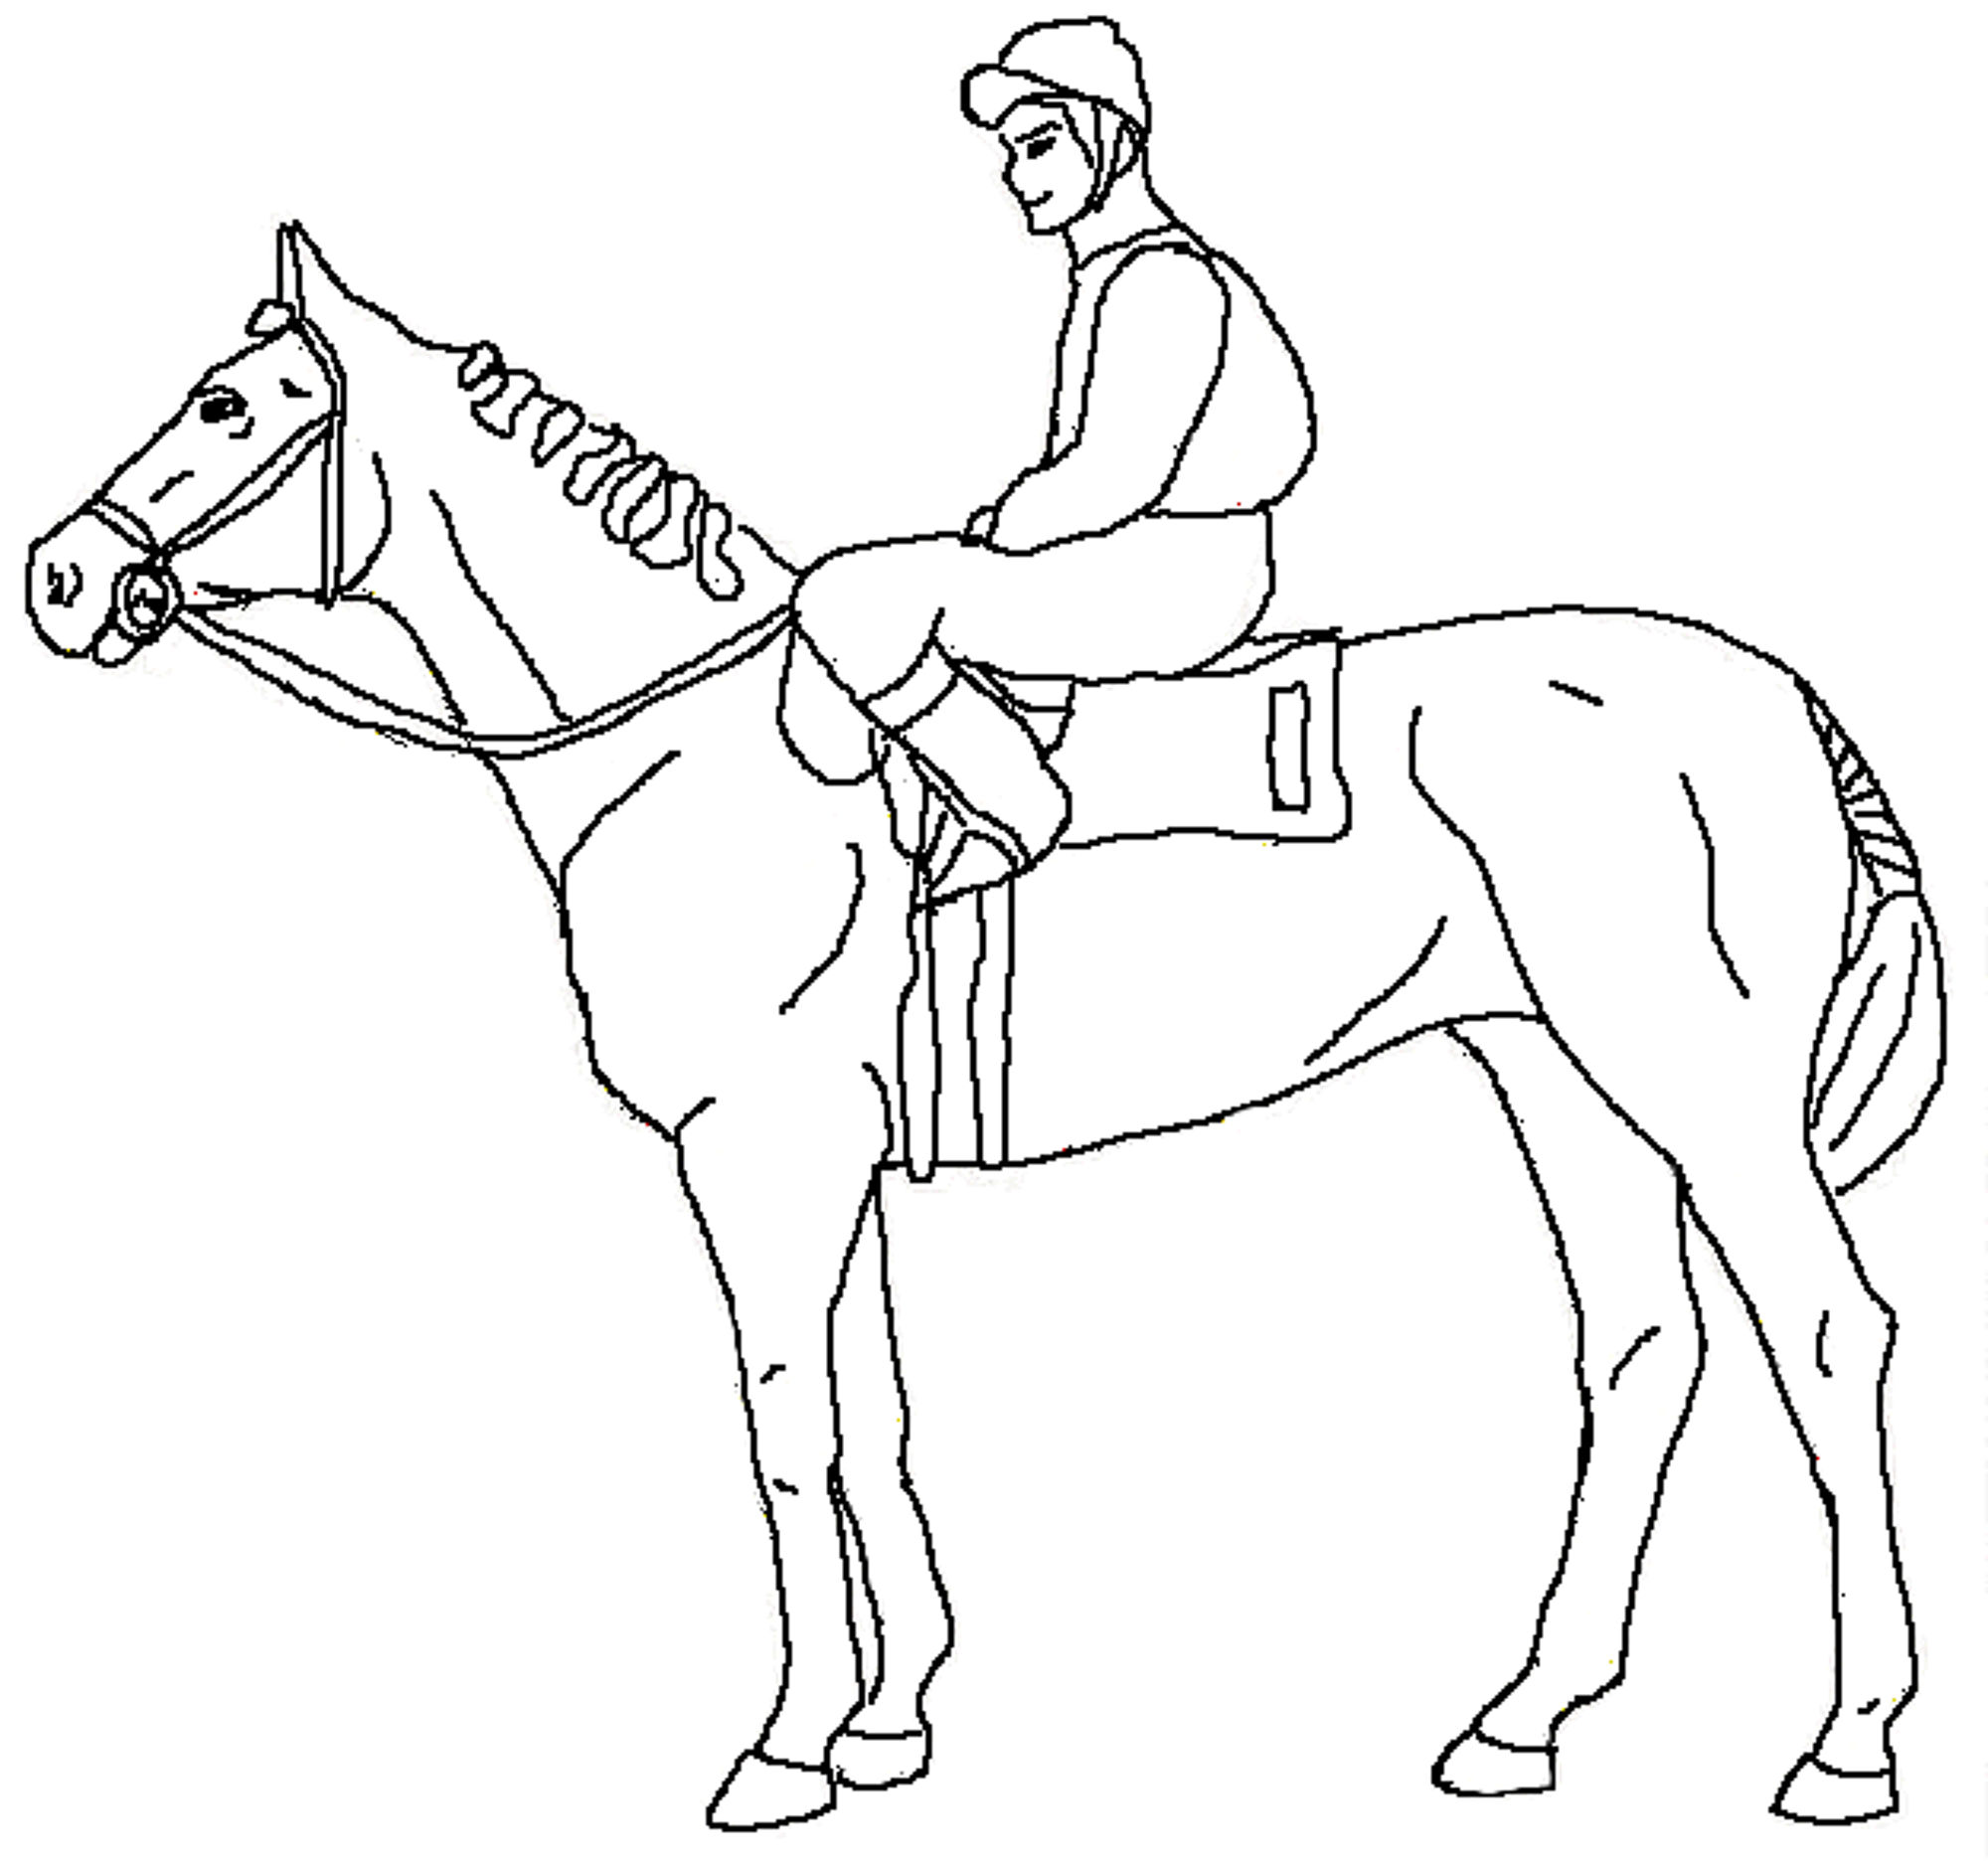 horse coloring sheets fun horse coloring pages for your kids printable horse coloring sheets 1 2